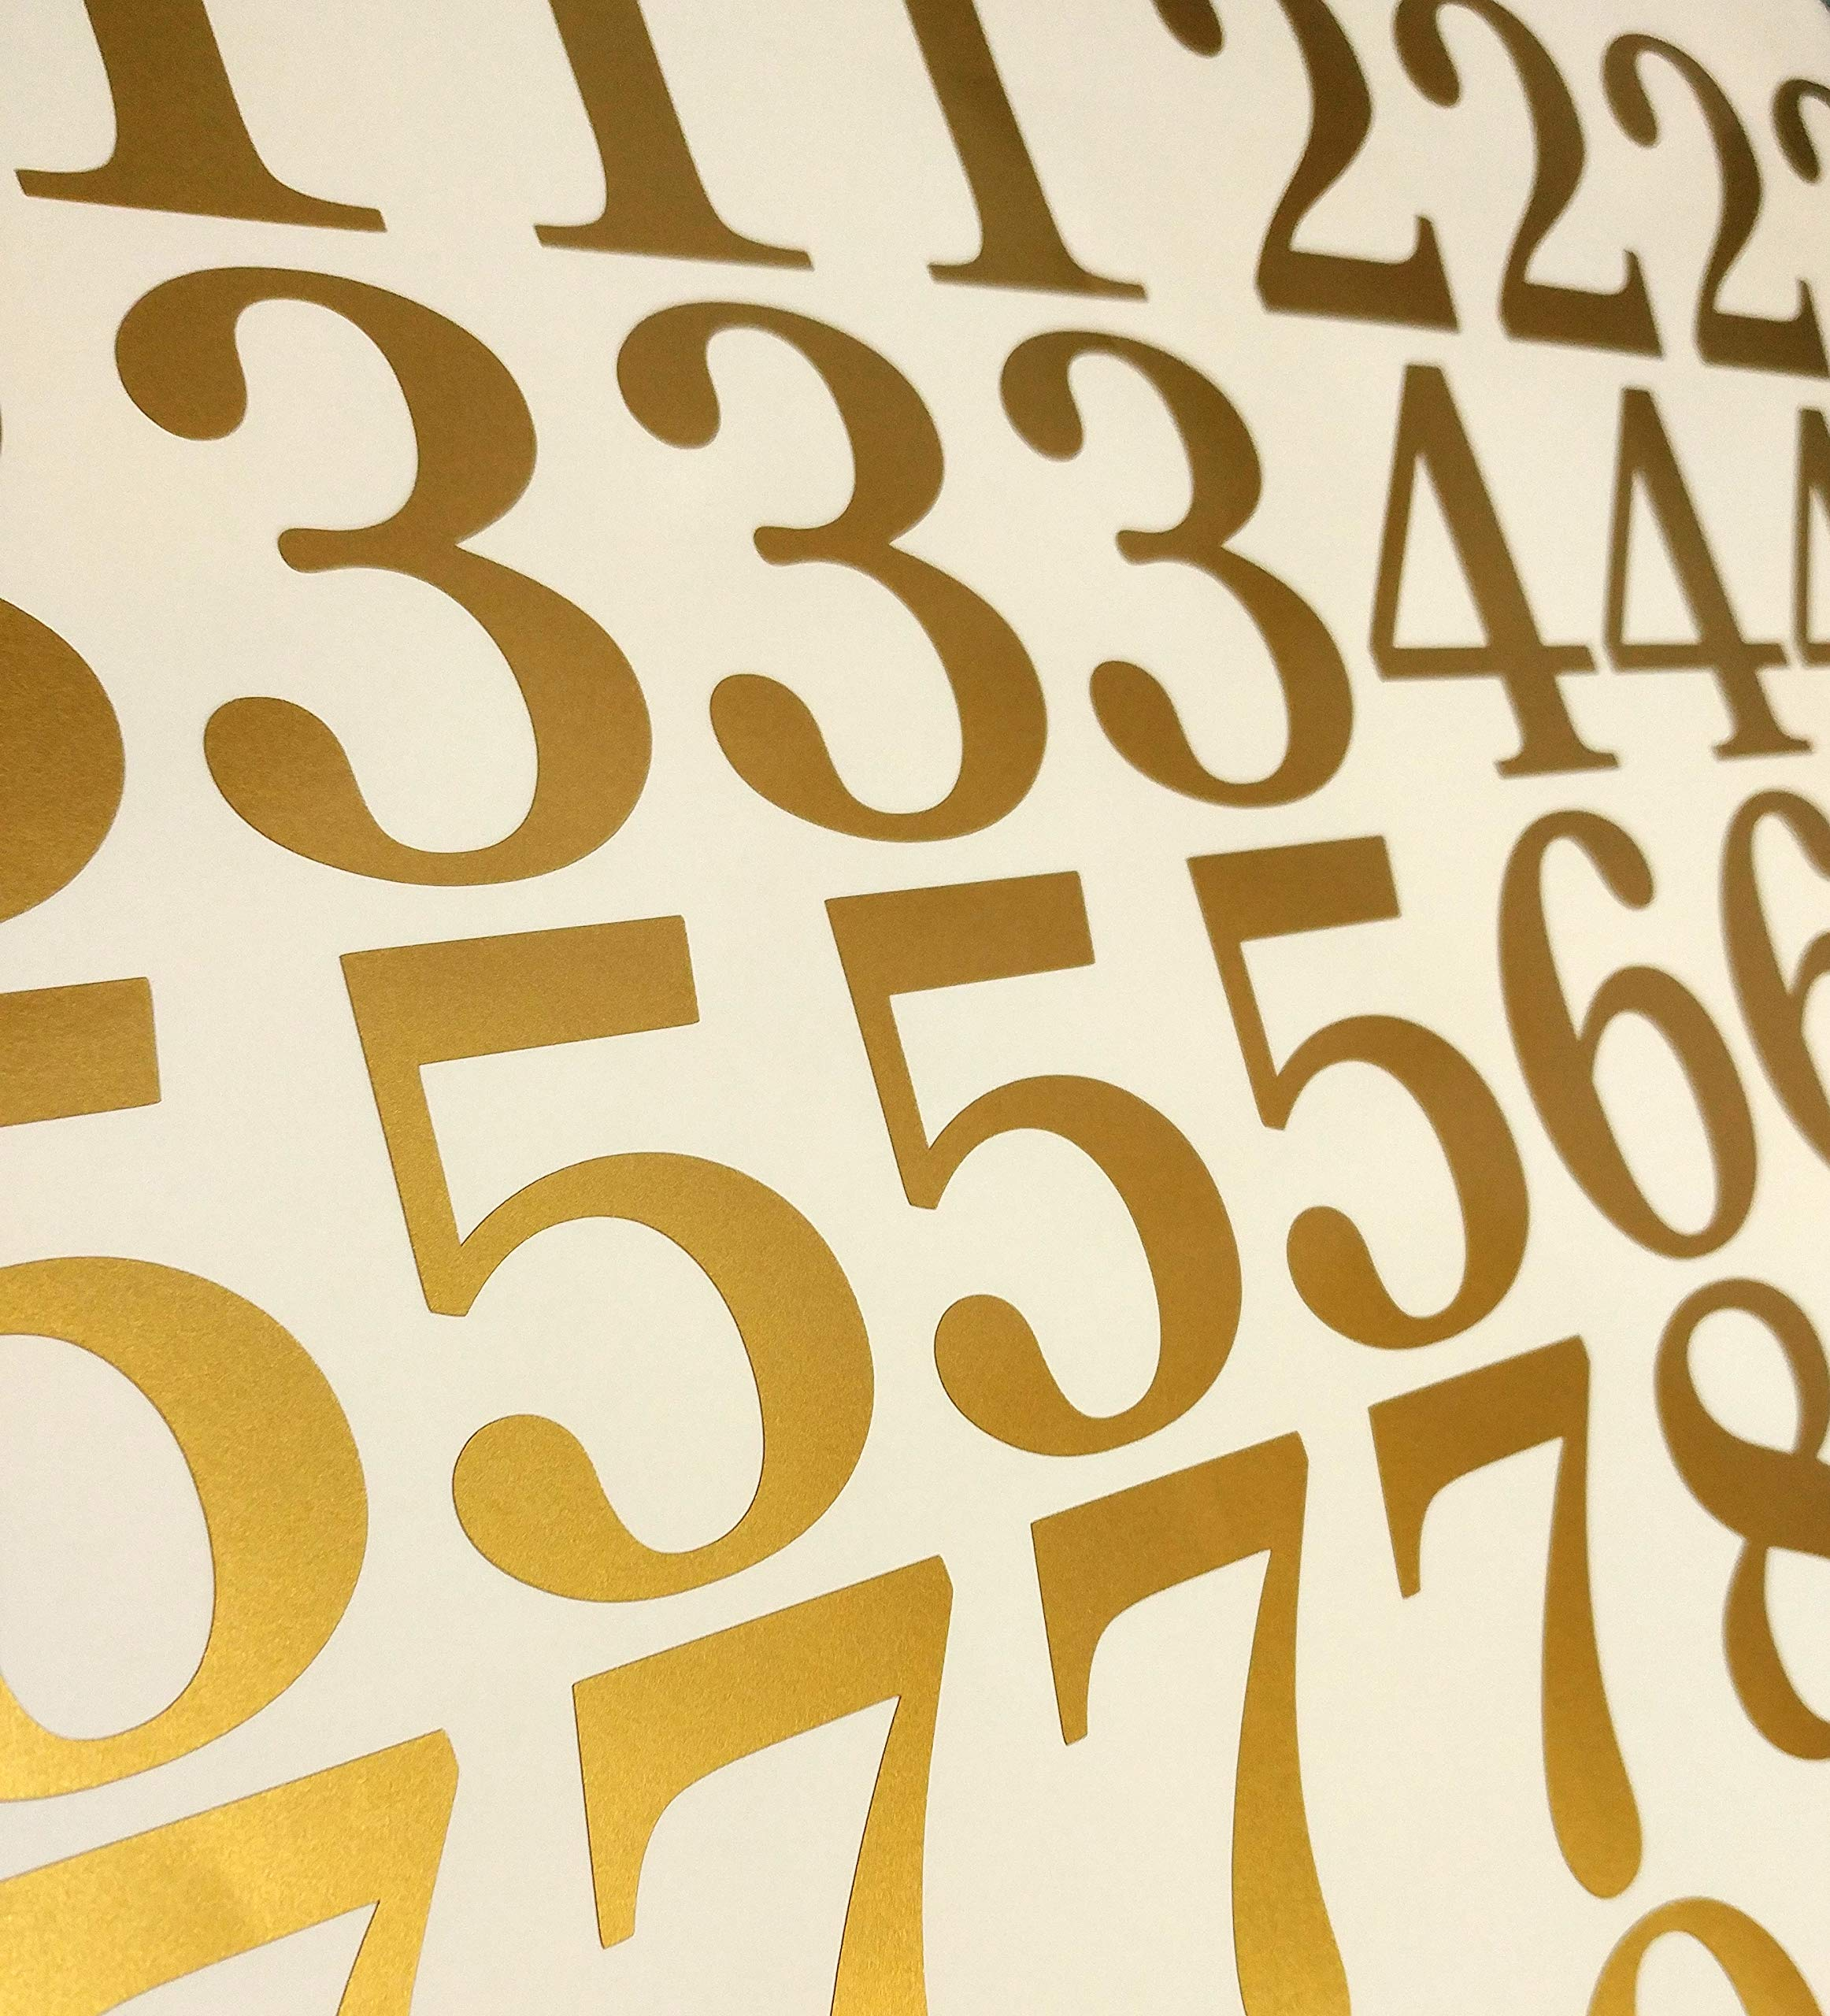 3'' Metallic Gold Color, Classic Style Mailbox Numbers,Lot of 40 (4 of each number form 0 to 9) 3 inch tall, Vinyl Mailbox Numbers,Doors,Tool Box,Locker,Car,Truck,Address Decal Stickers (Century)